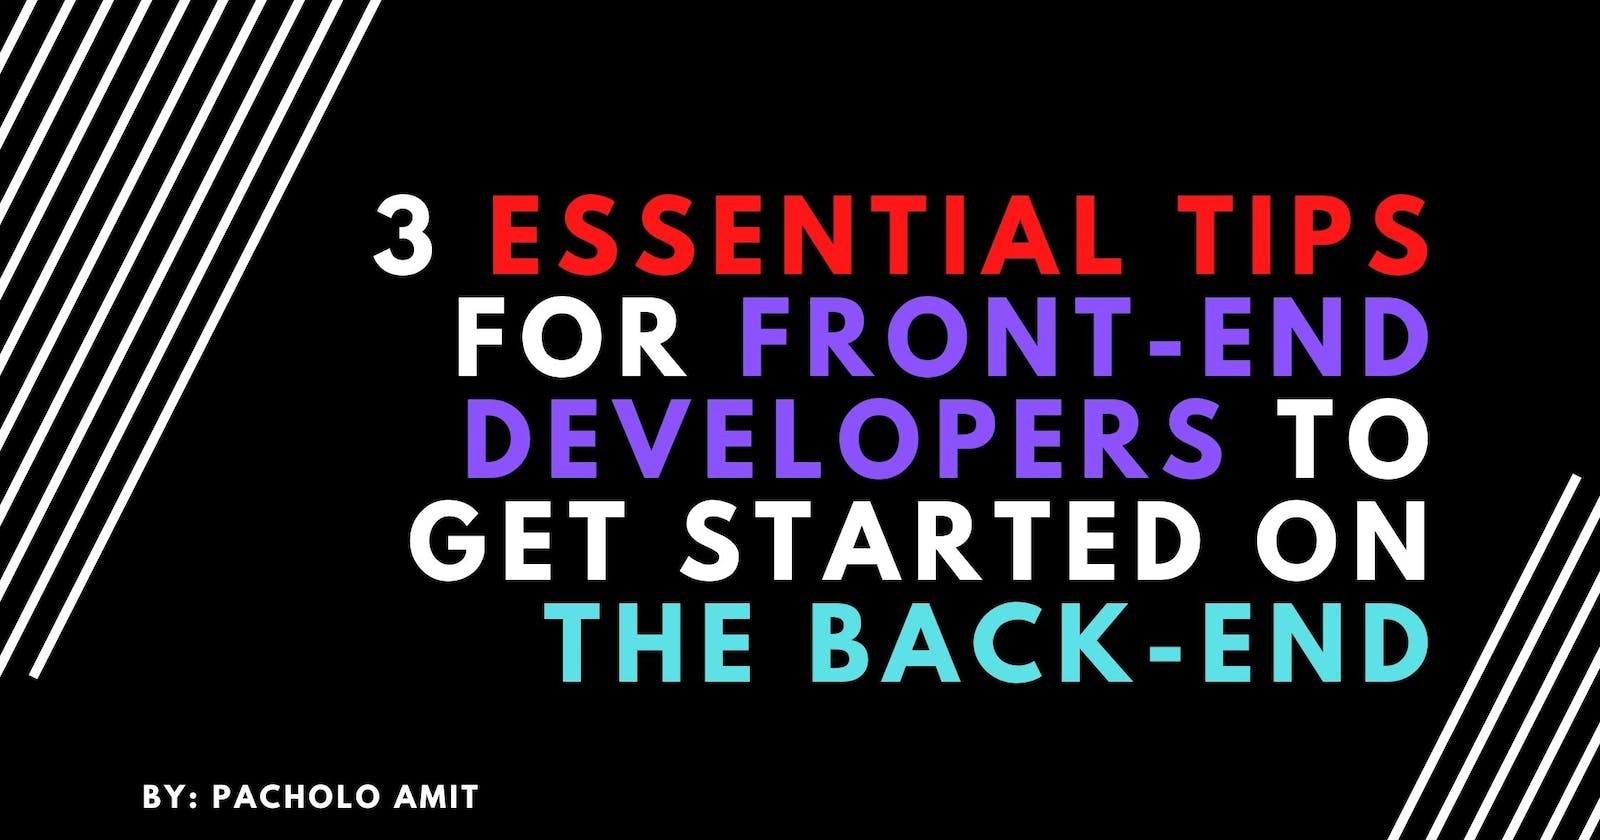 3 Essential tips for front-end developers to get started on the back-end